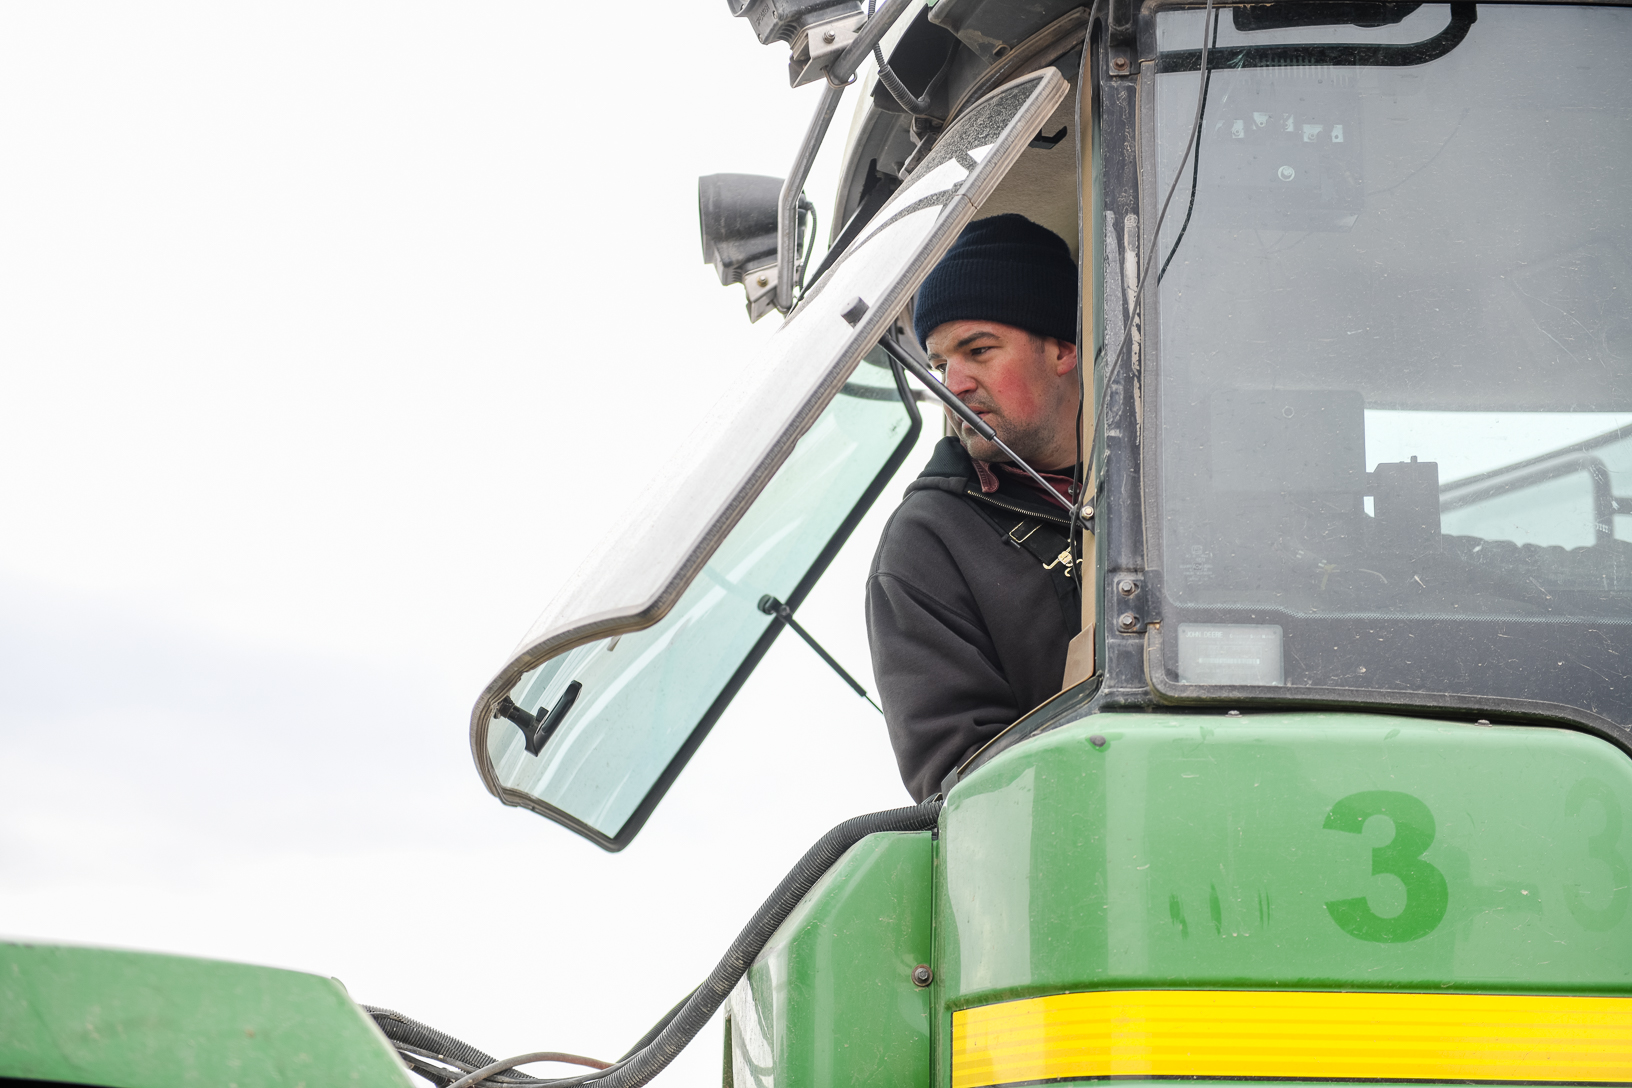 Jake Pyle navigates the tractor while watching the barn move across the frozen soybean field.